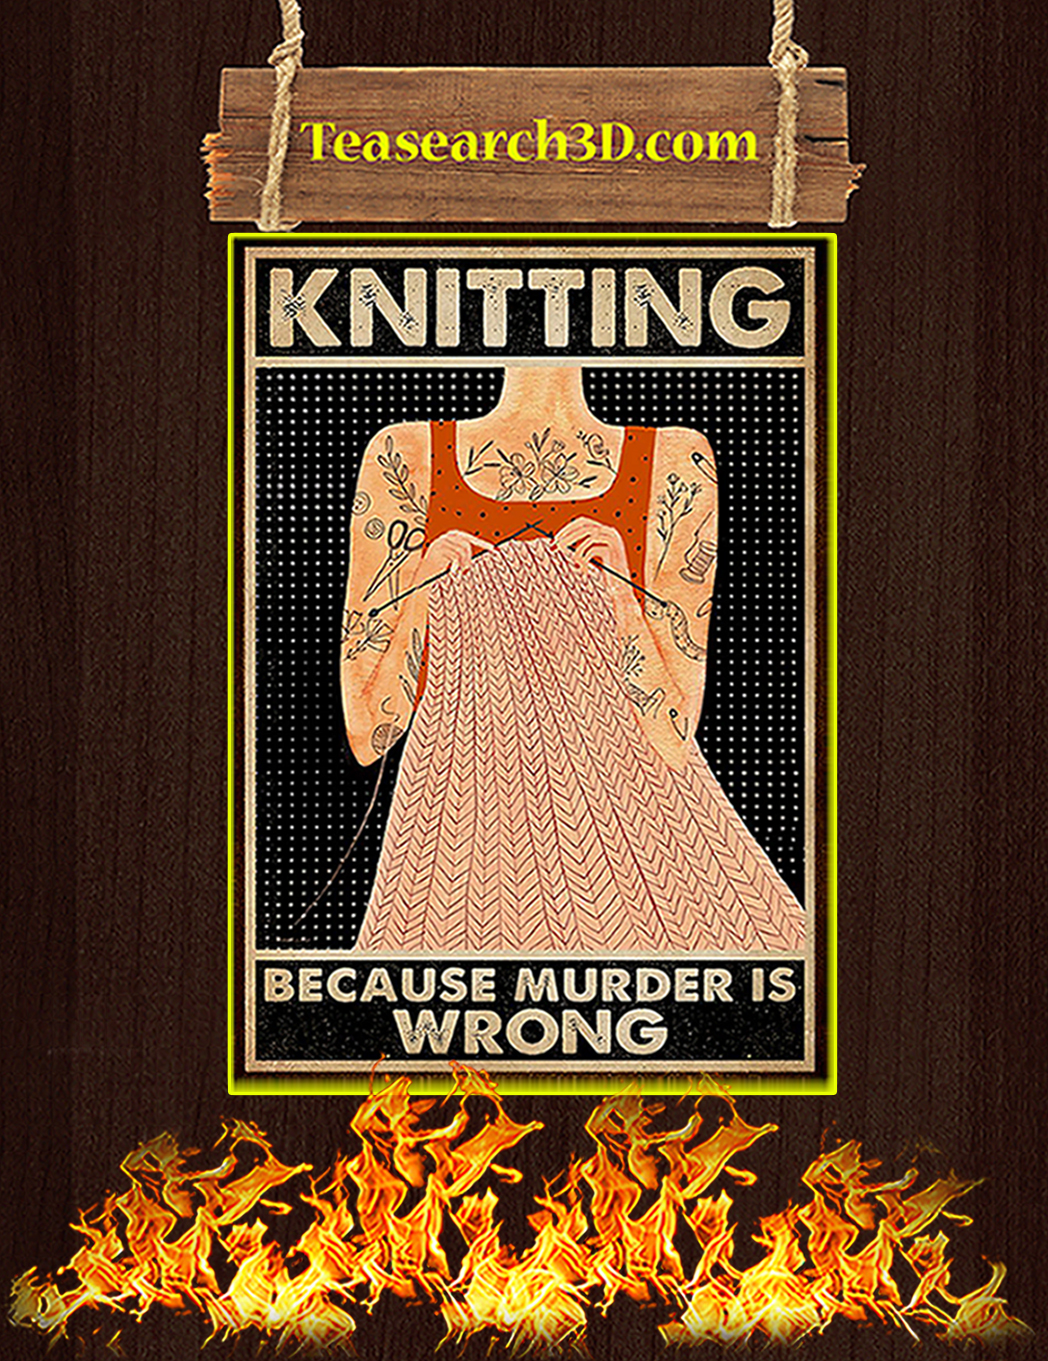 Knitting because murder is wrong poster A1